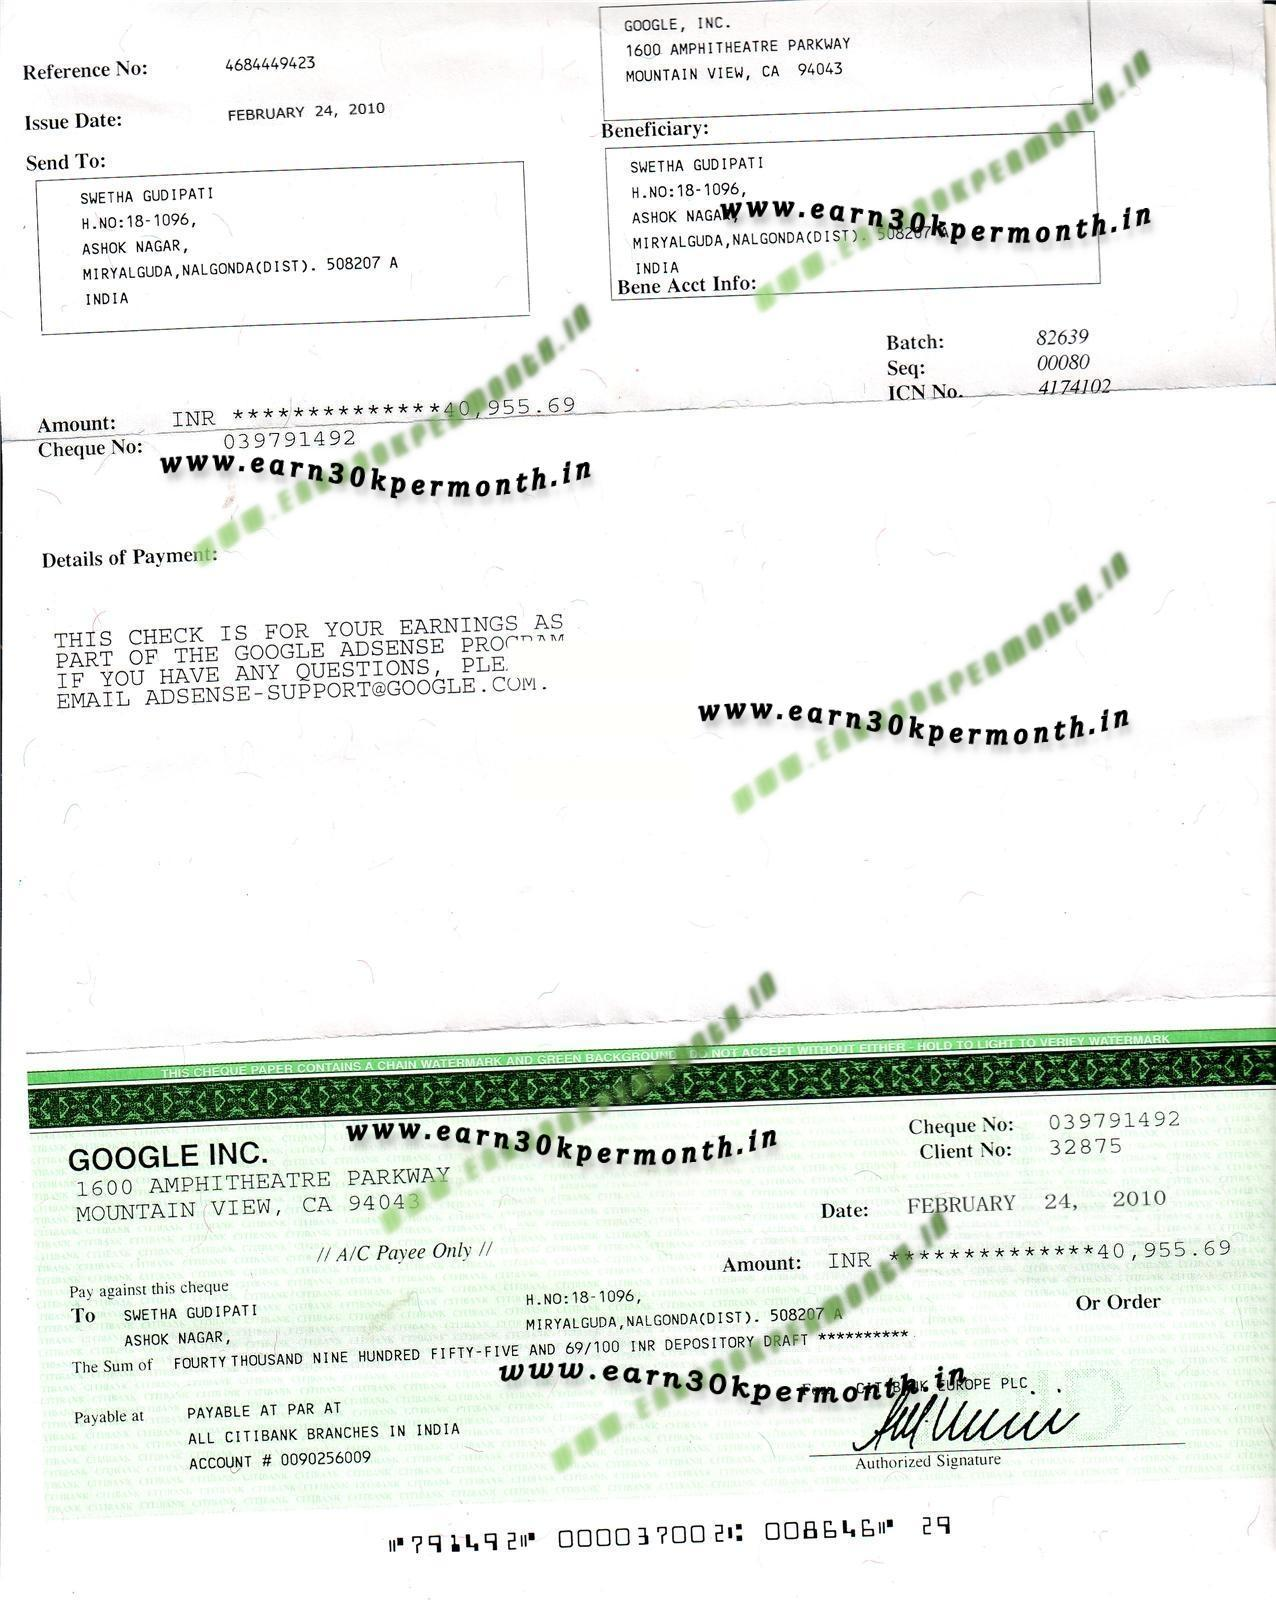 Original Scan Adsense Adbrite Cheques Proof